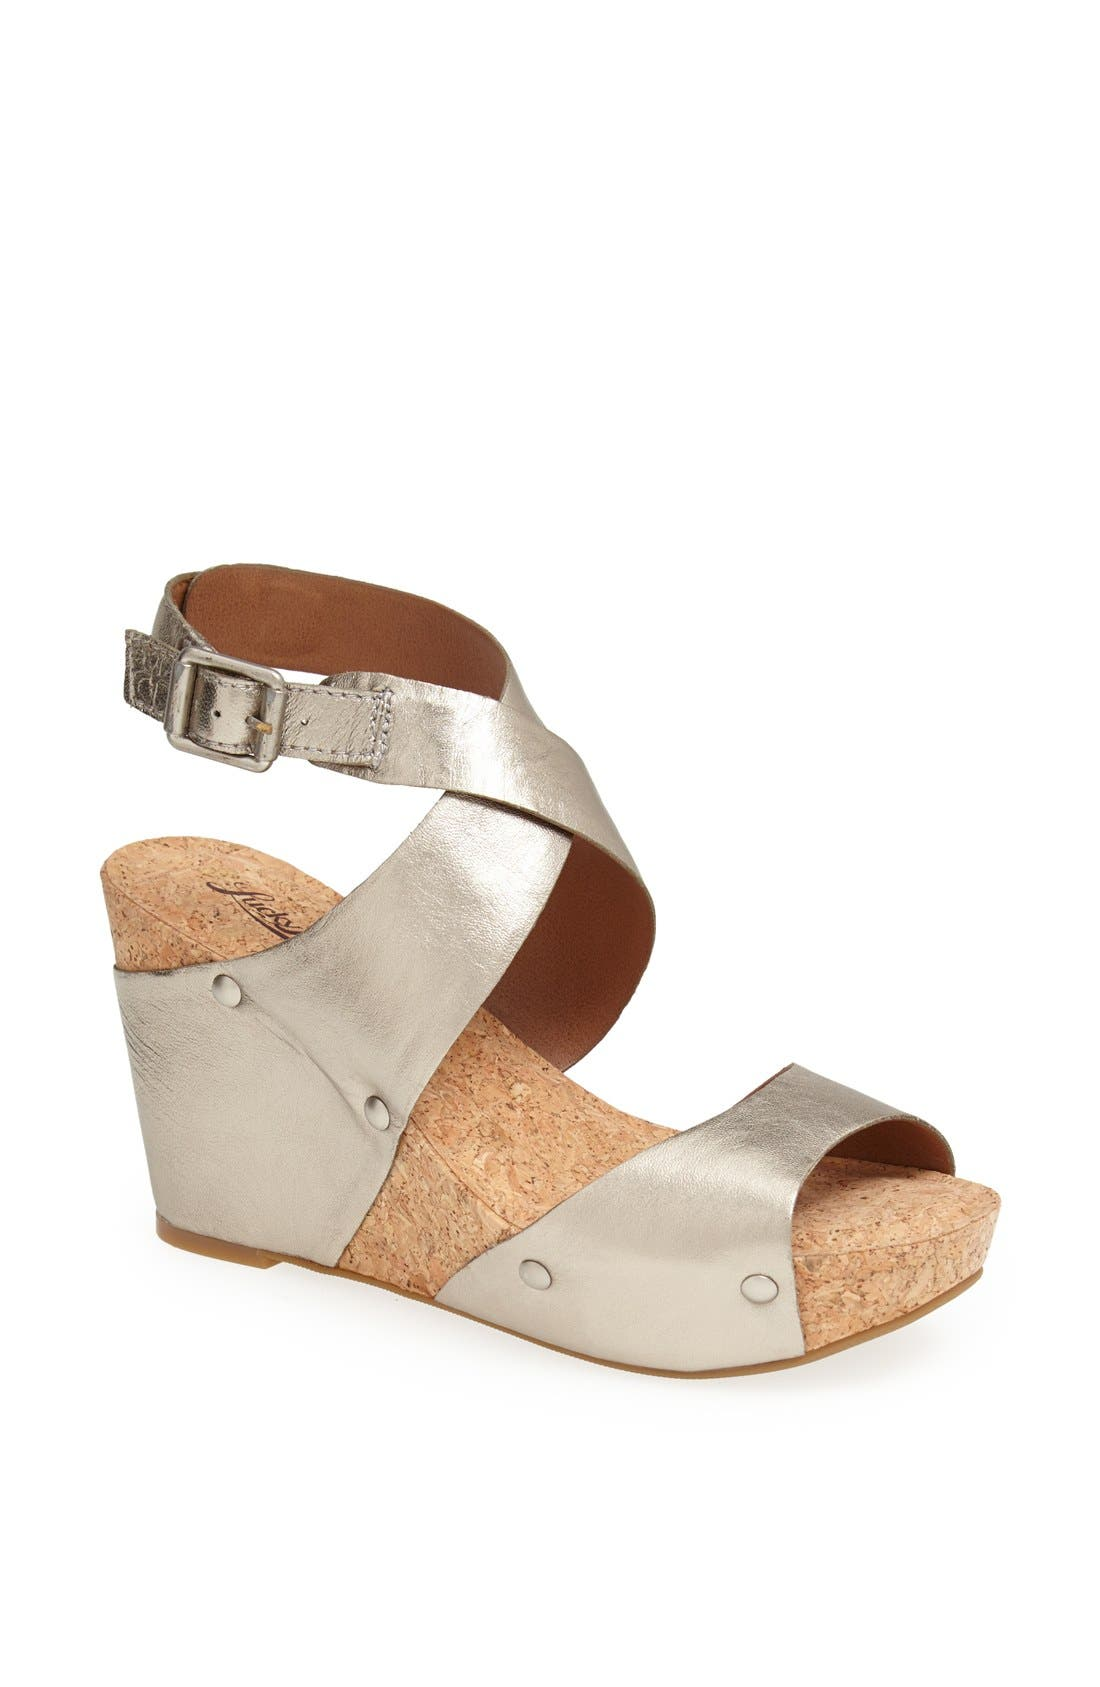 Alternate Image 1 Selected - Lucky Brand 'Moran' Sandal